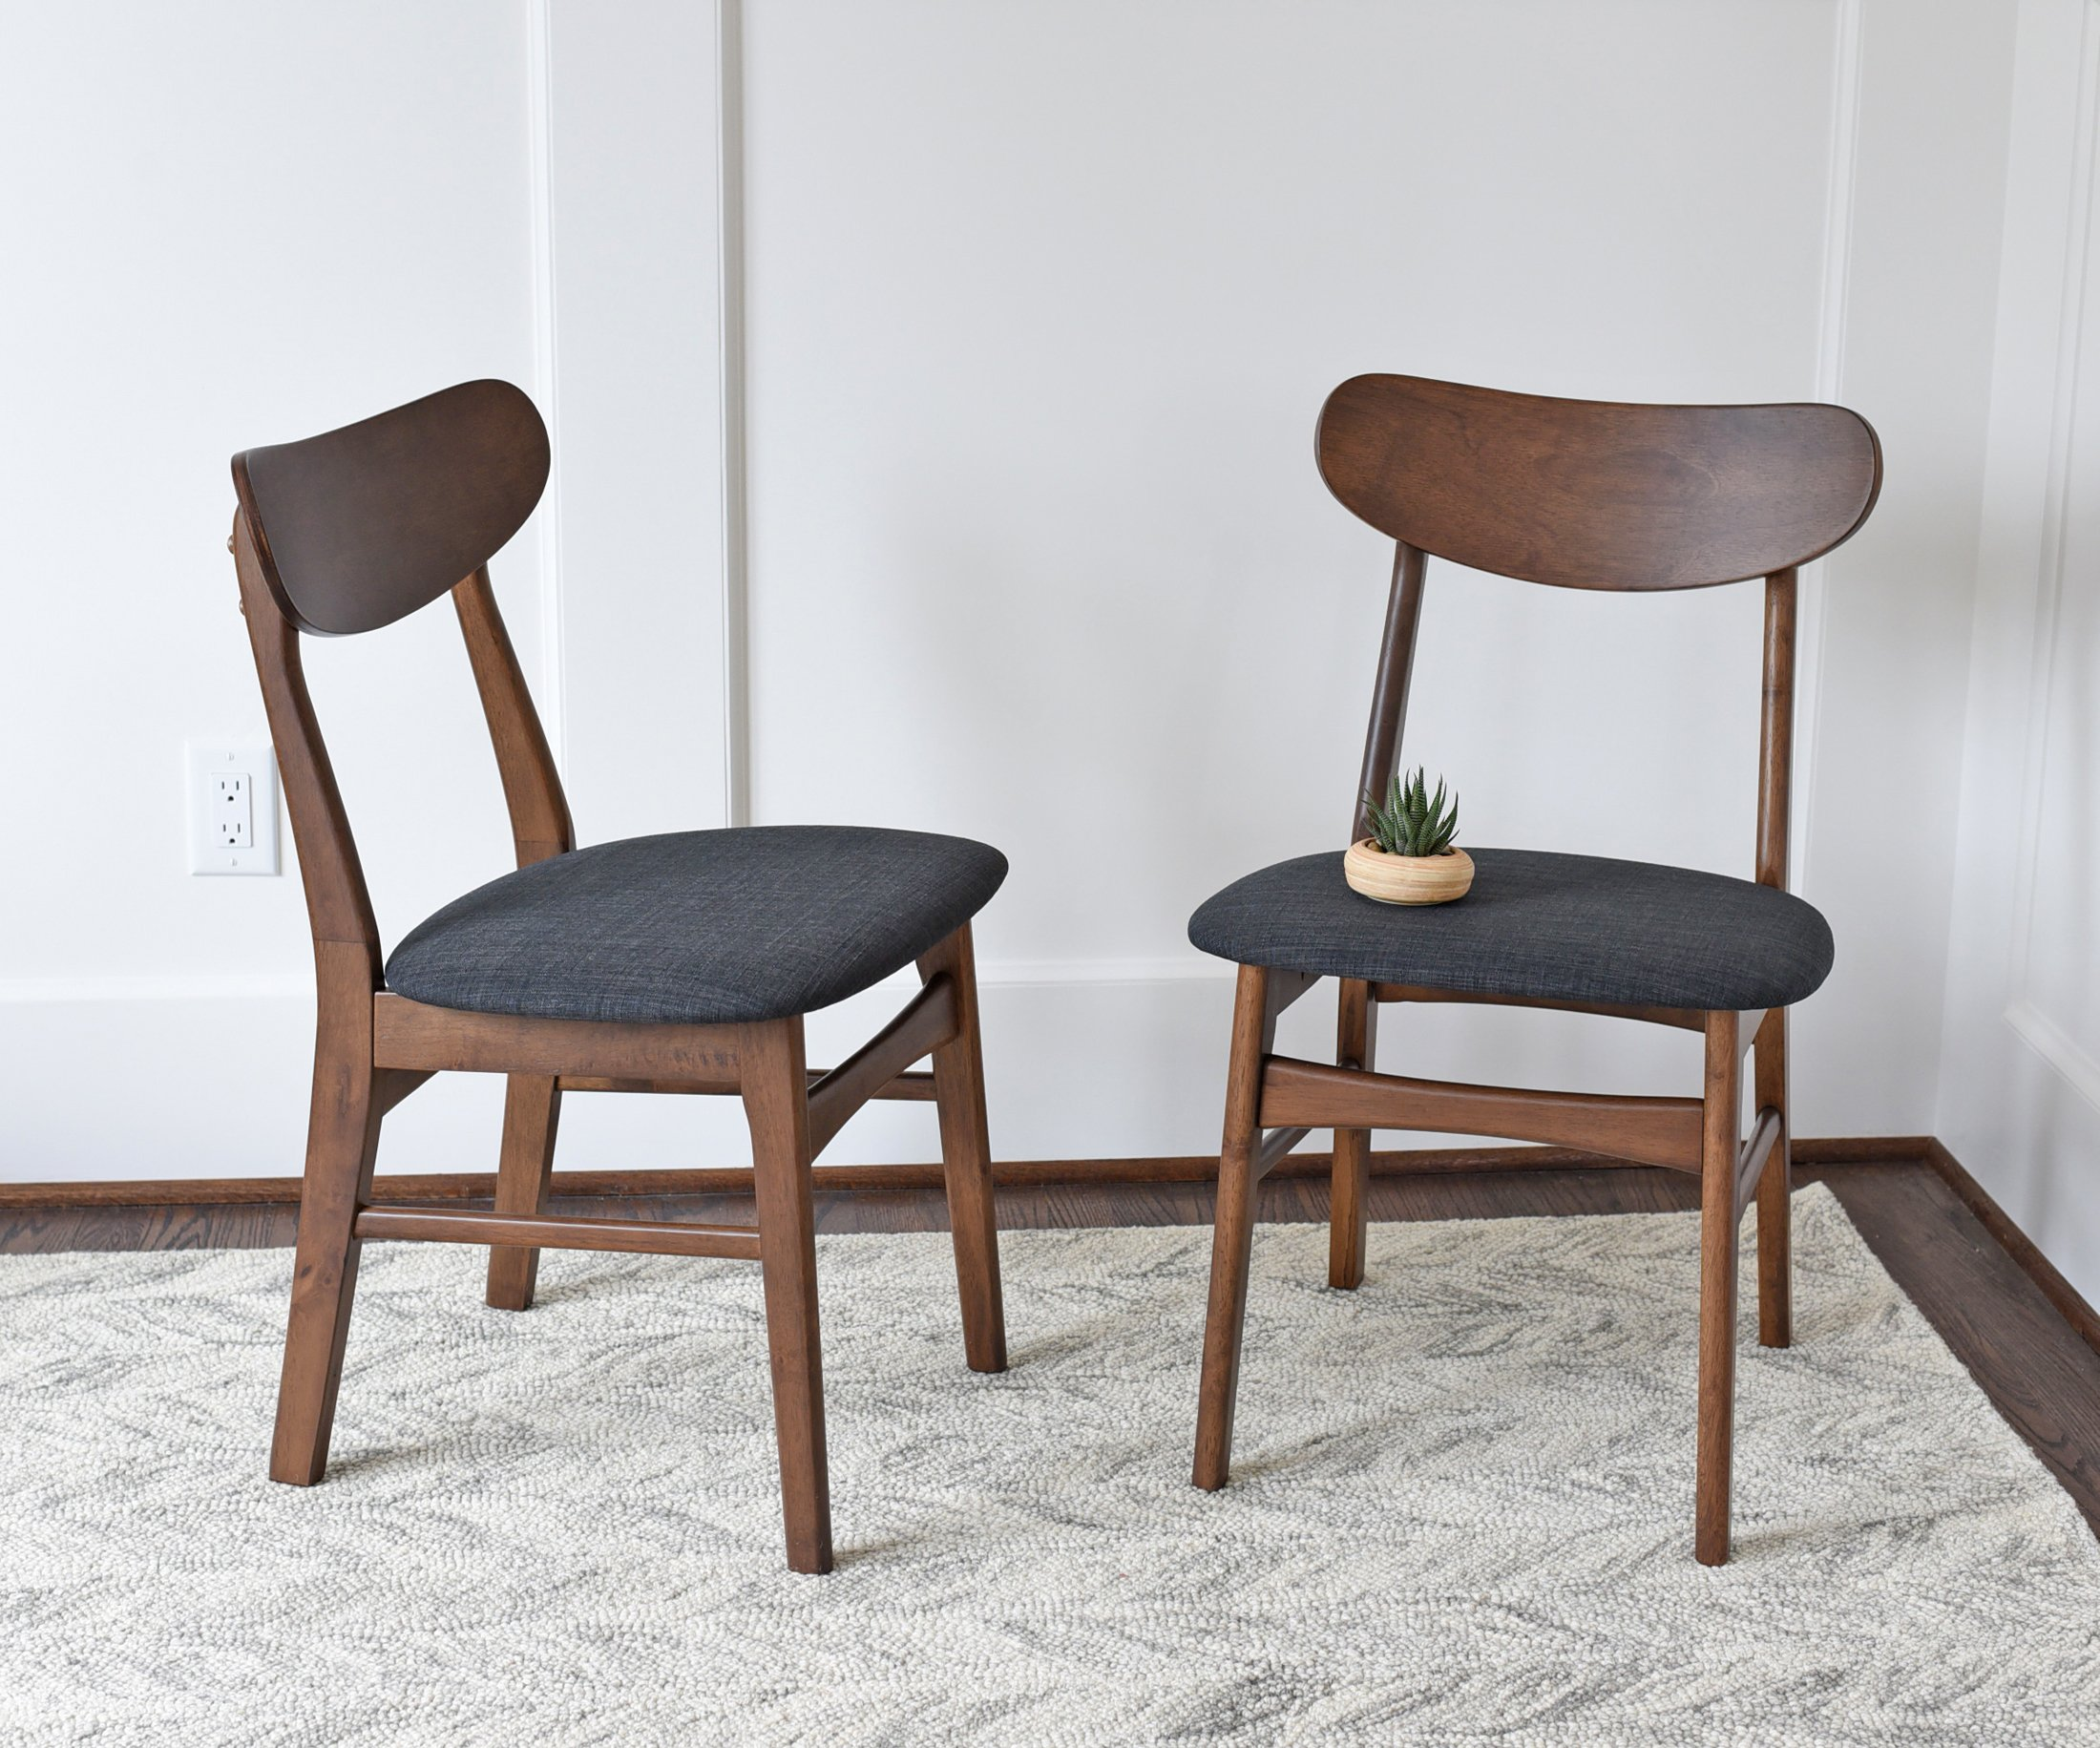 9e06442d6203 Get Quotations · Mid Century Modern Dining Chairs SET OF 2 by Edloe Finch -  Upholstered, Dark Grey